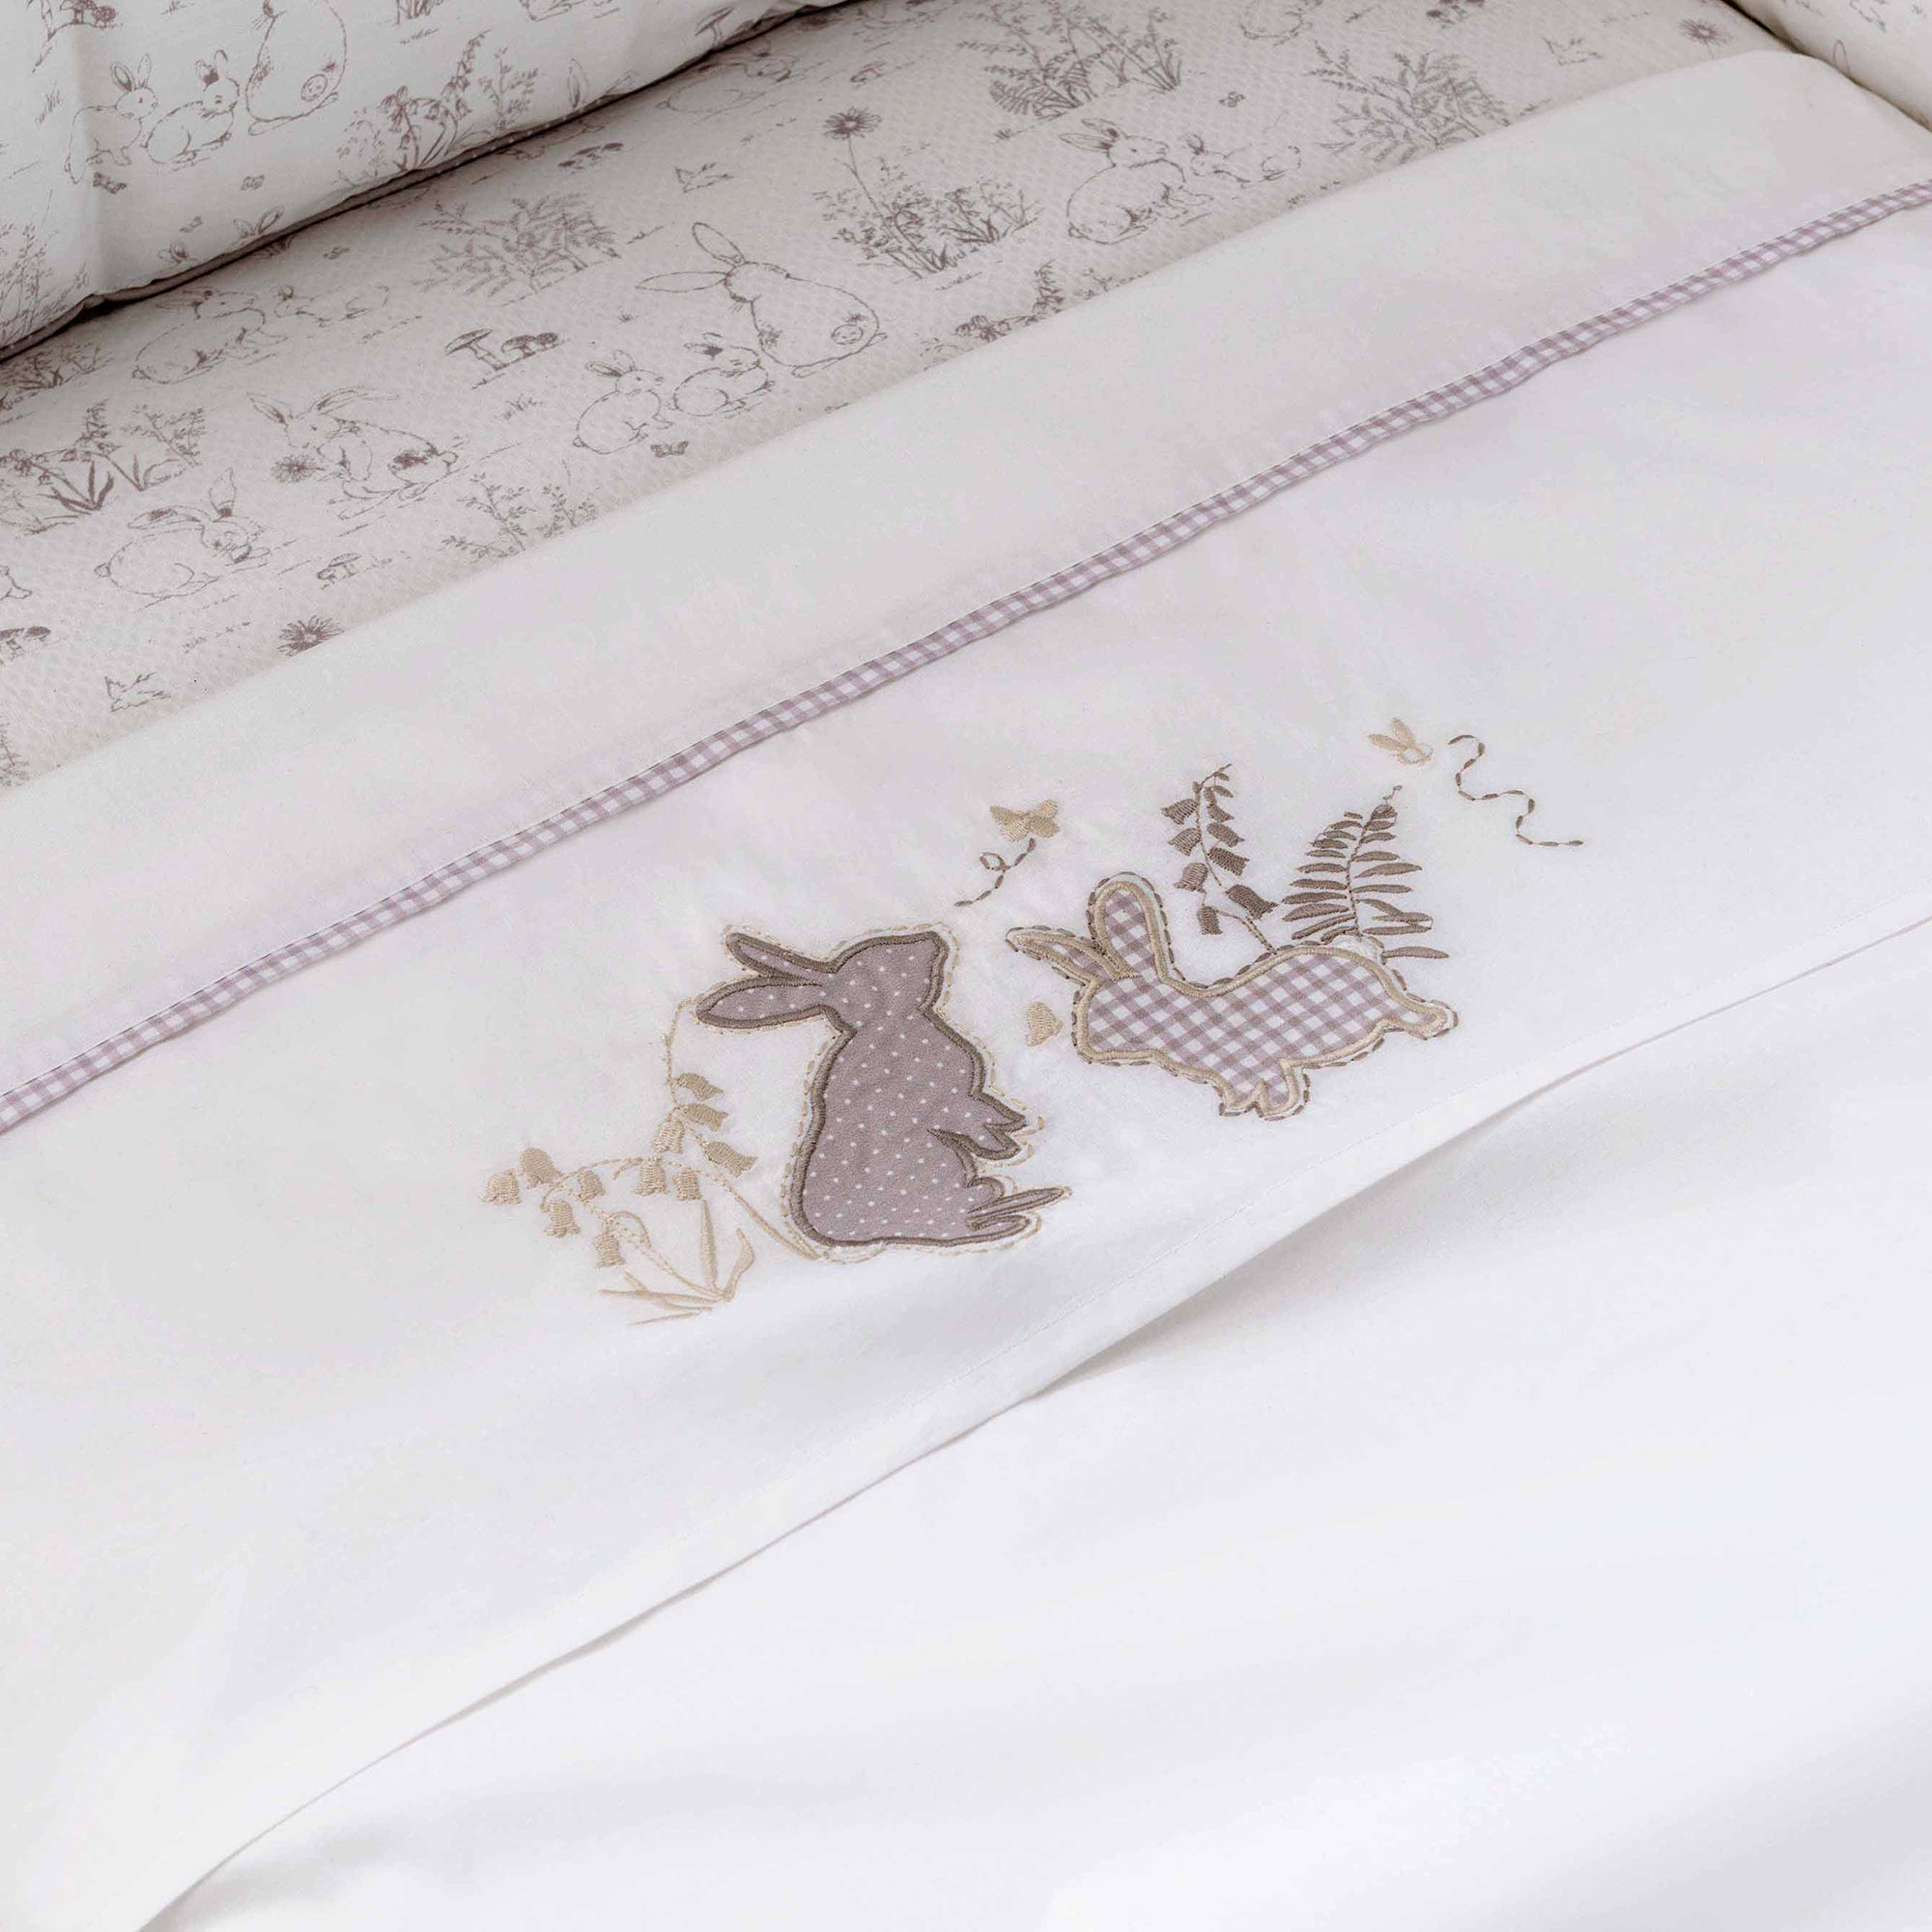 Dorma White Bunny Meadow Collection Flat and Fitted Cot Sheet Set